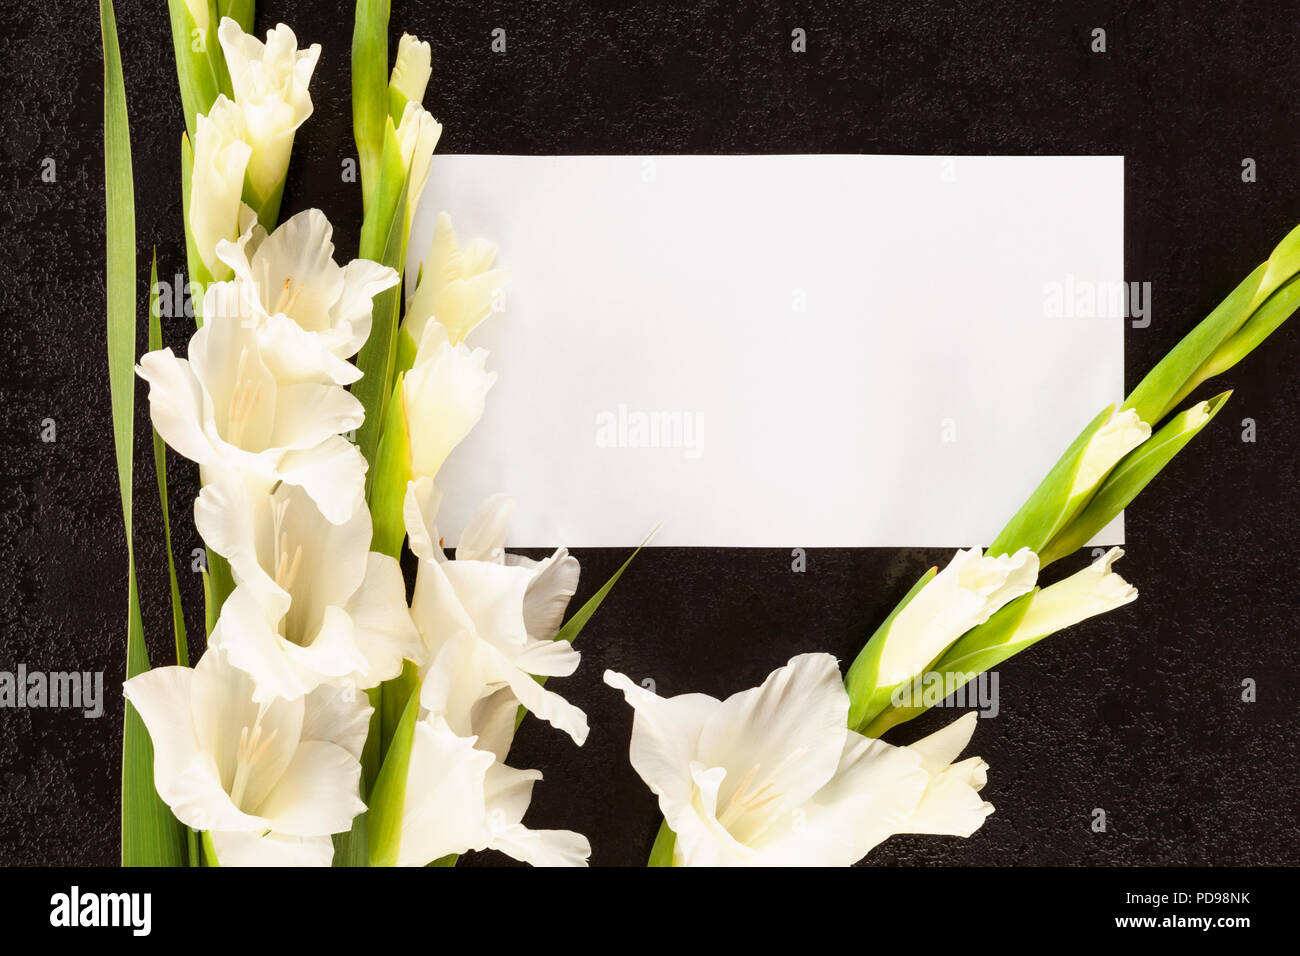 57f62dfc6ae04e Obituary Notice Stockfotos & Obituary Notice Bilder - Alamy